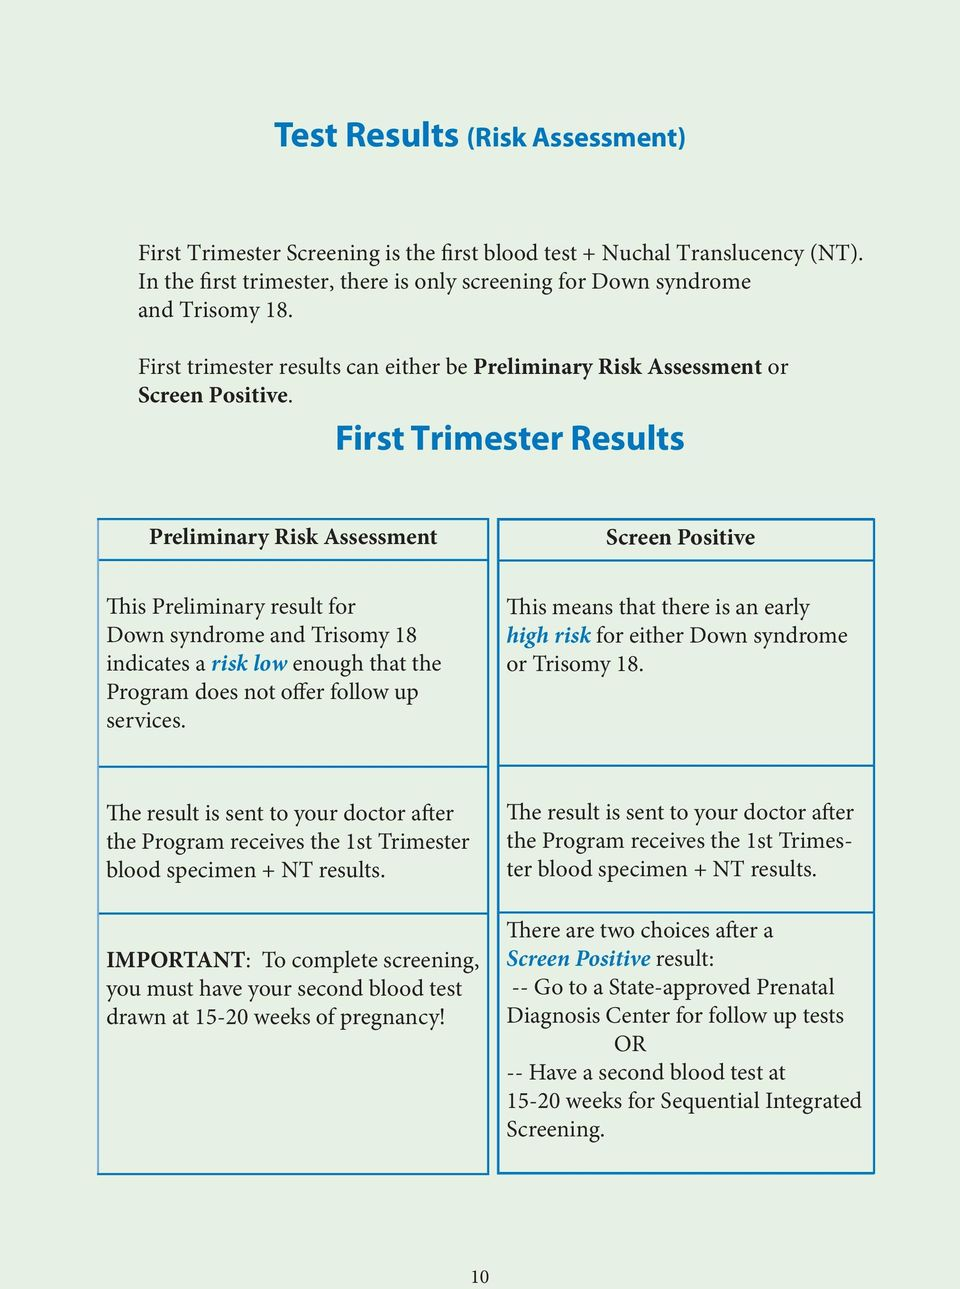 First Trimester Results Preliminary Risk Assessment Screen Positive This Preliminary result for Down syndrome and Trisomy 18 indicates a risk low enough that the Program does not offer follow up